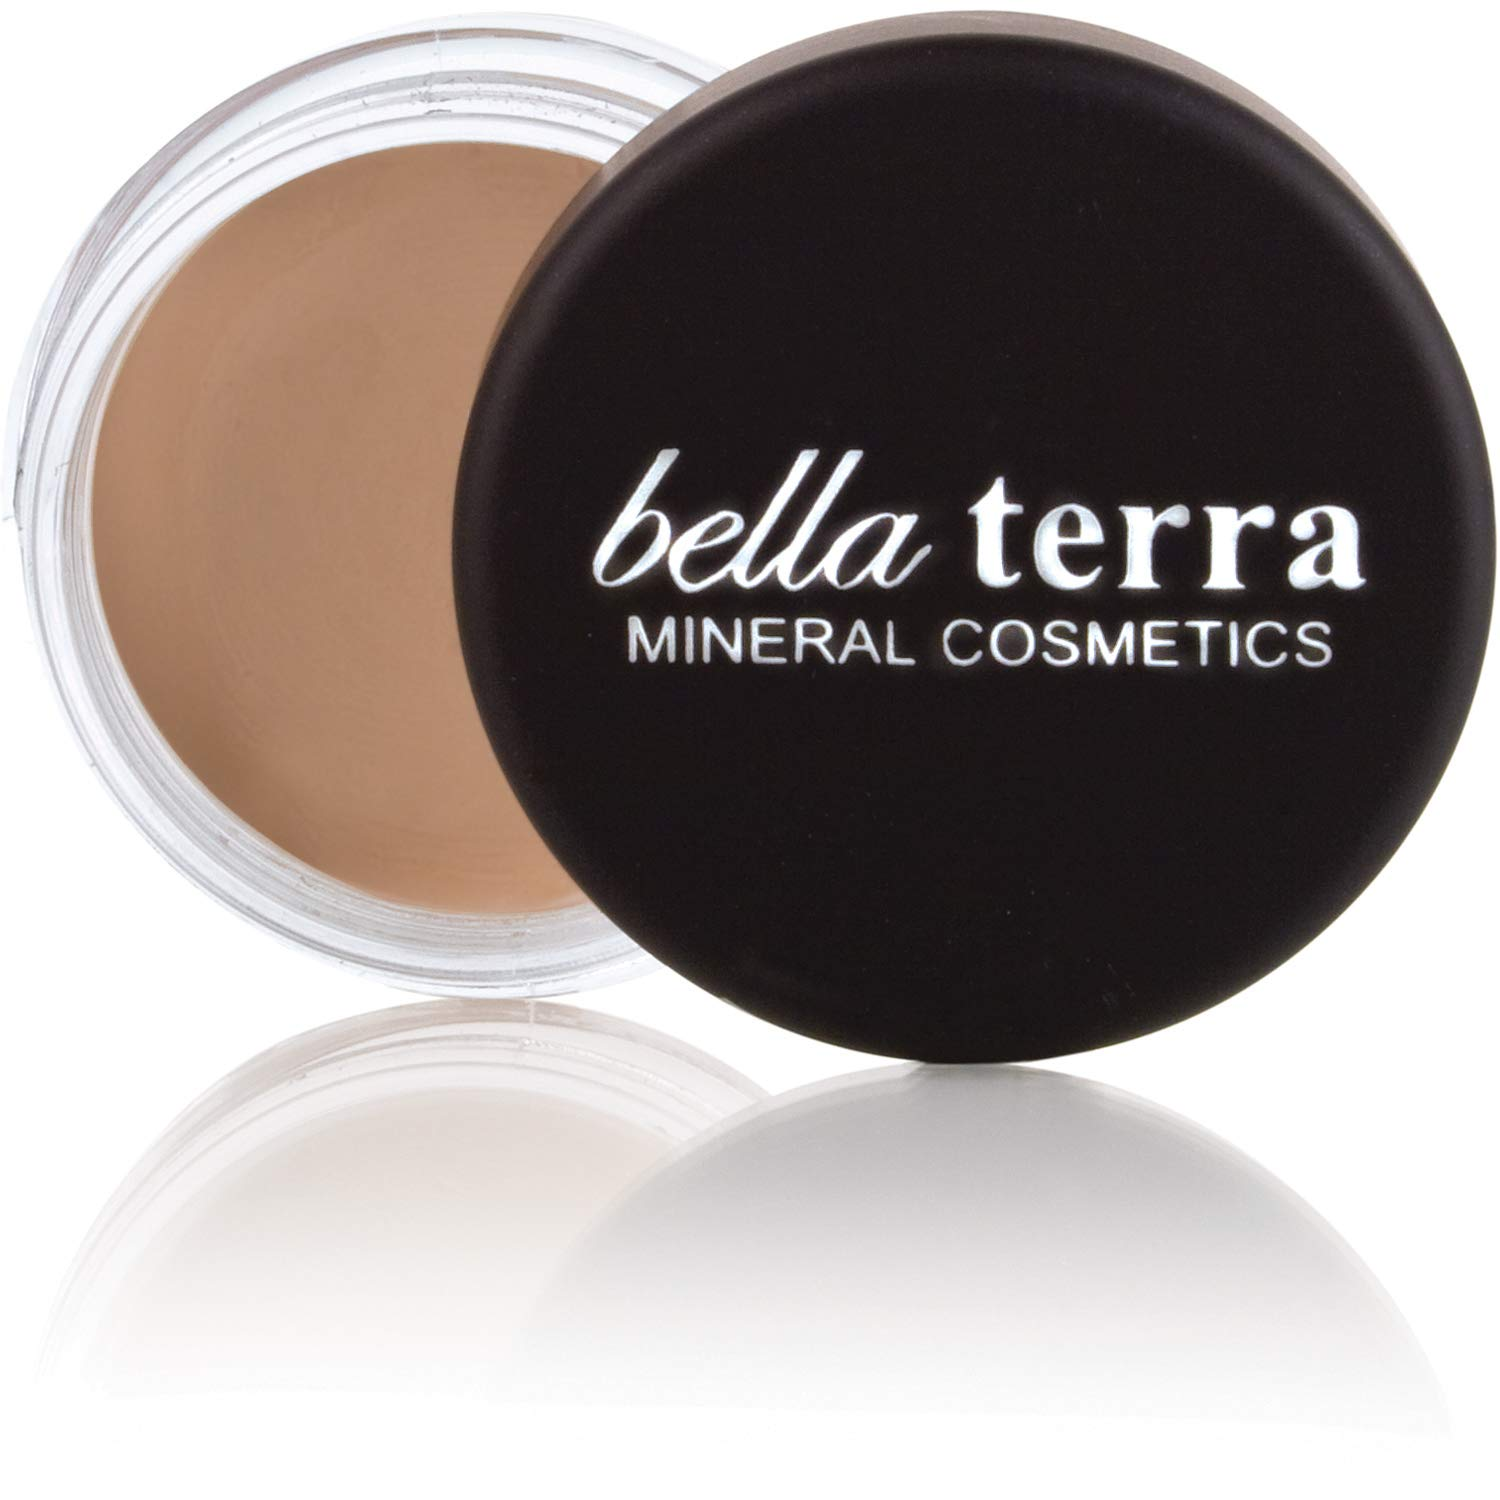 Bella-terra-eye-primer-amazon